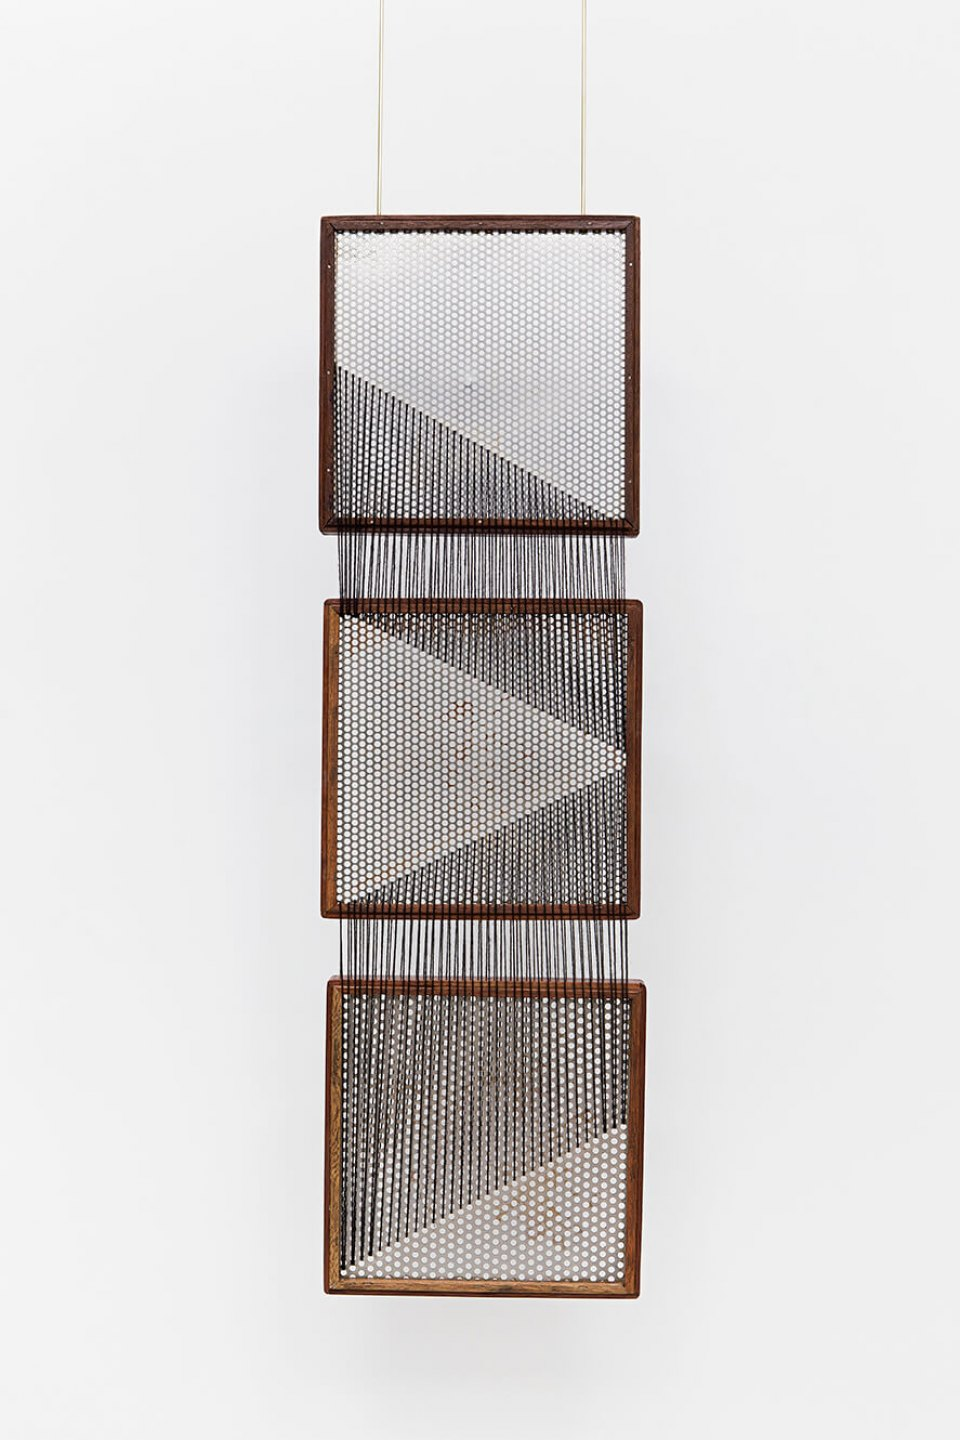 Paloma Bosquê, <em>On provisory interaction (geometry of relations #1)</em>, 2015, coffee sieve, wool and brass rods, 101,2 × 30 cm - Mendes Wood DM